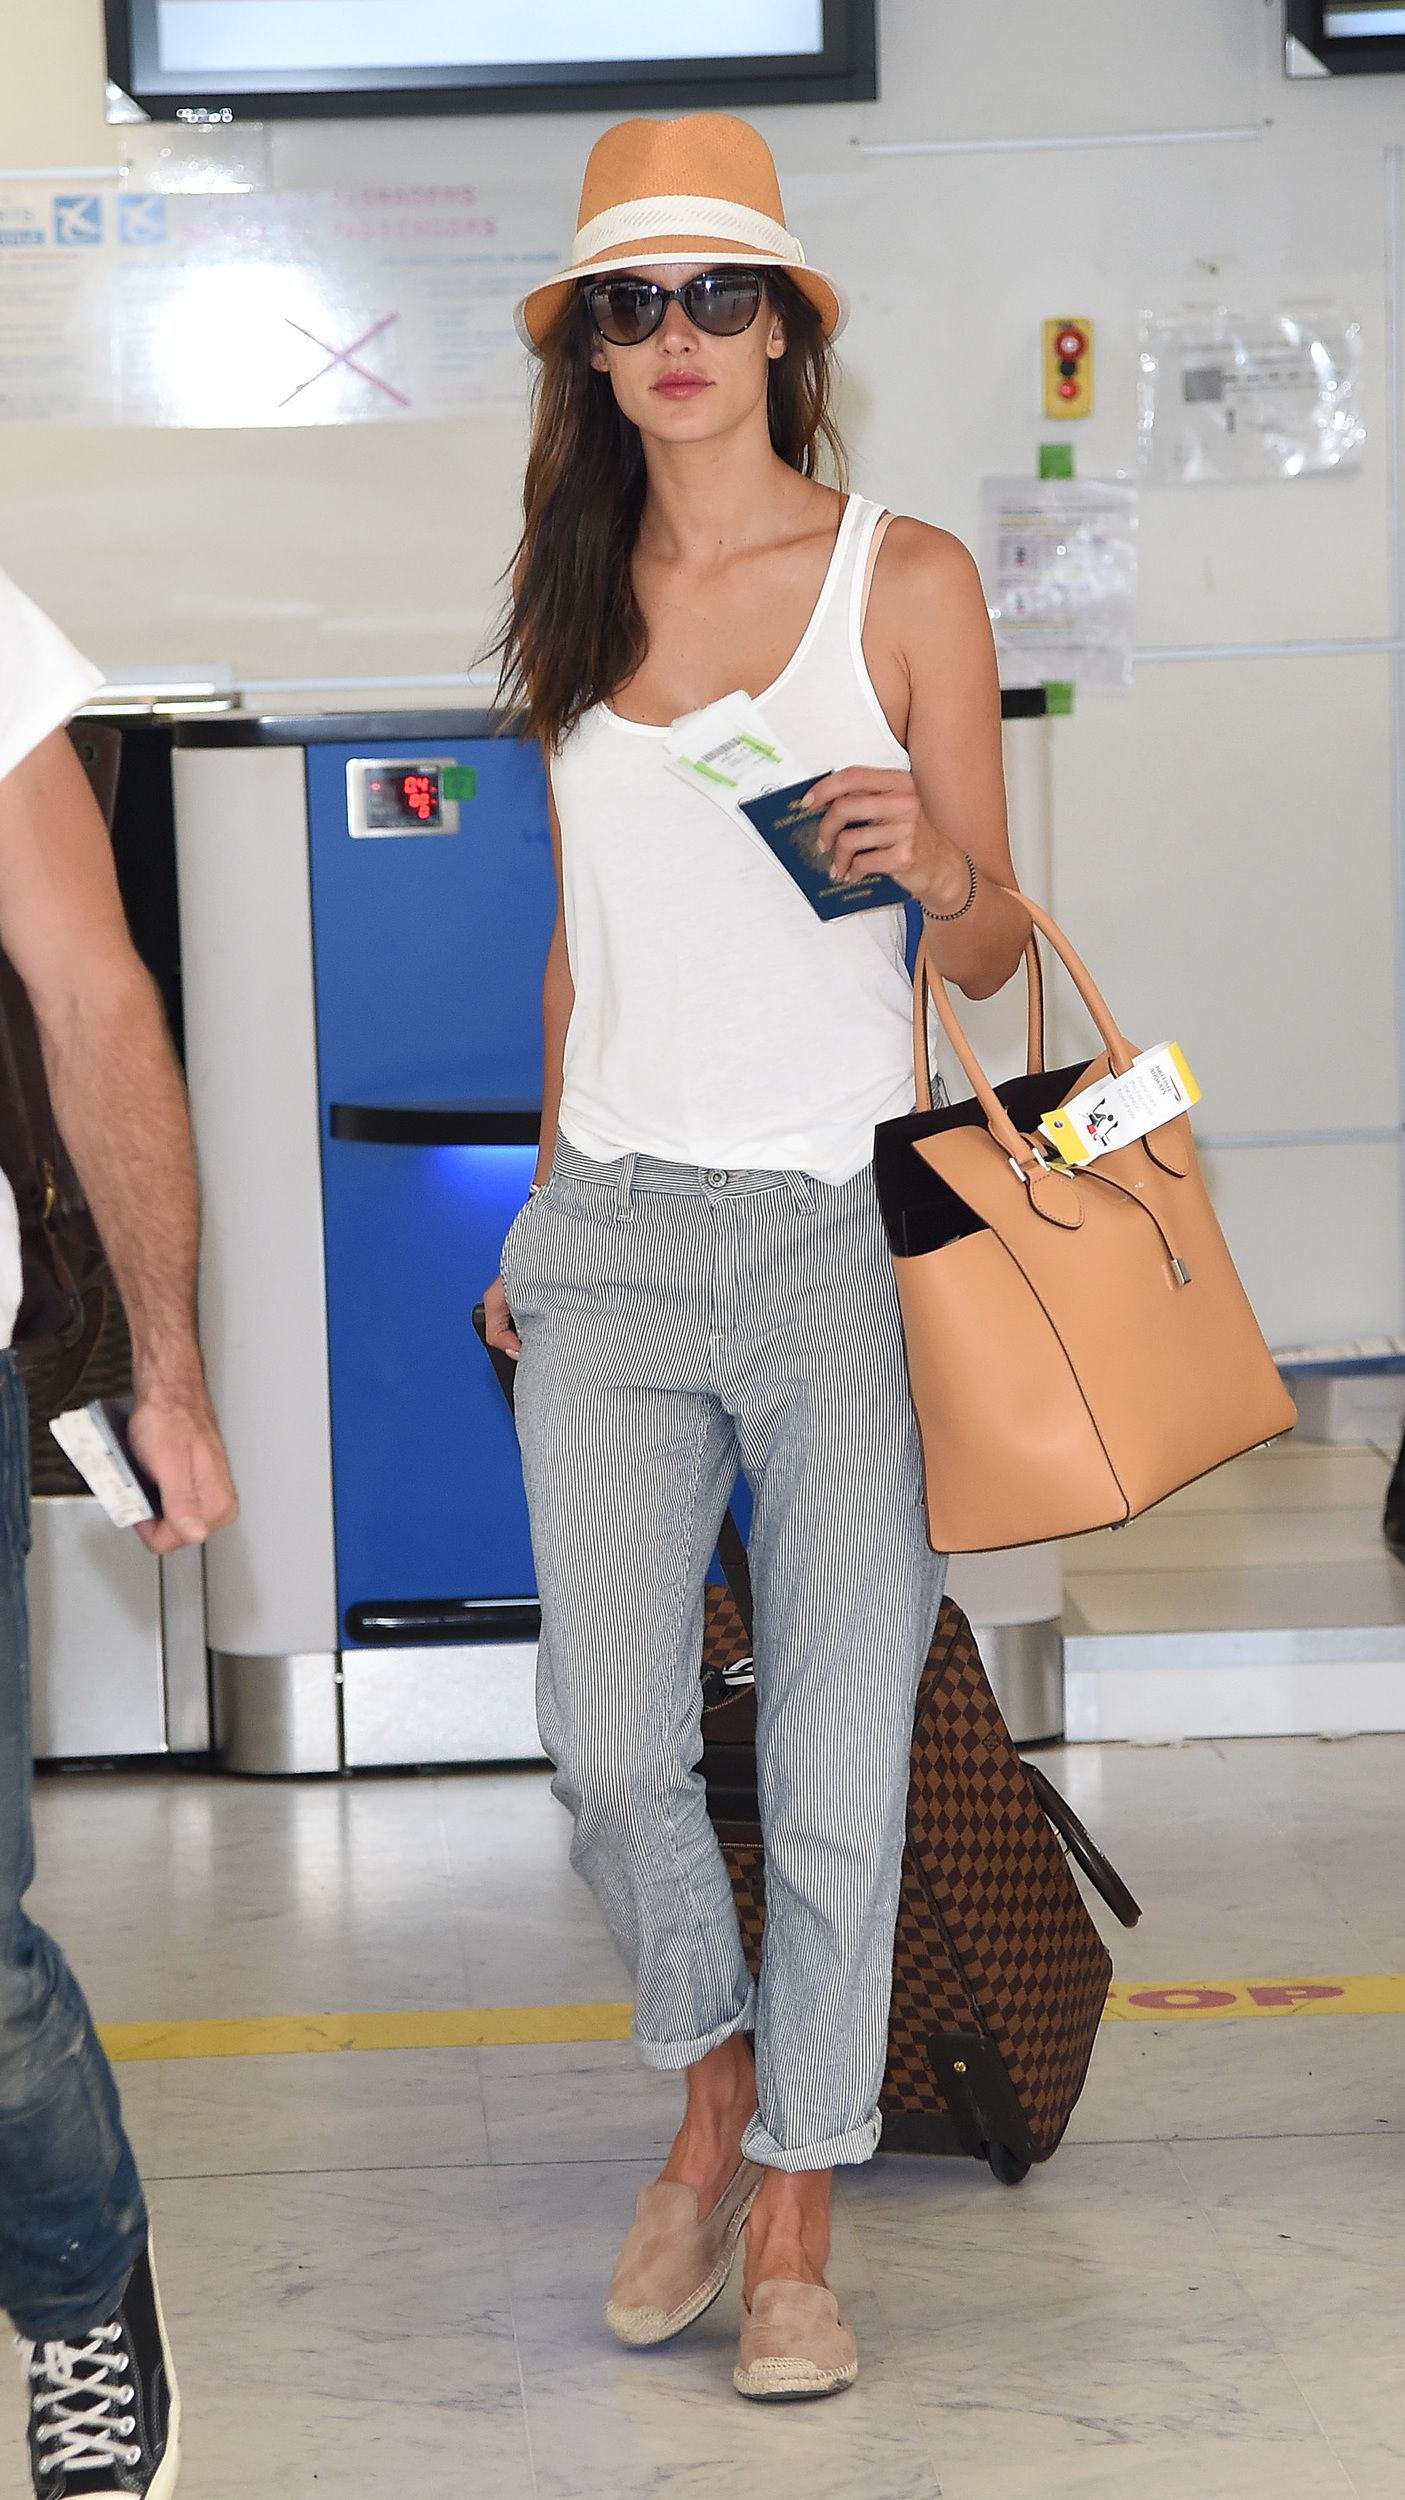 fc24aa8c85 Alessandra Ambrosio knows how to travel in style!  airportstyle via   stylelist